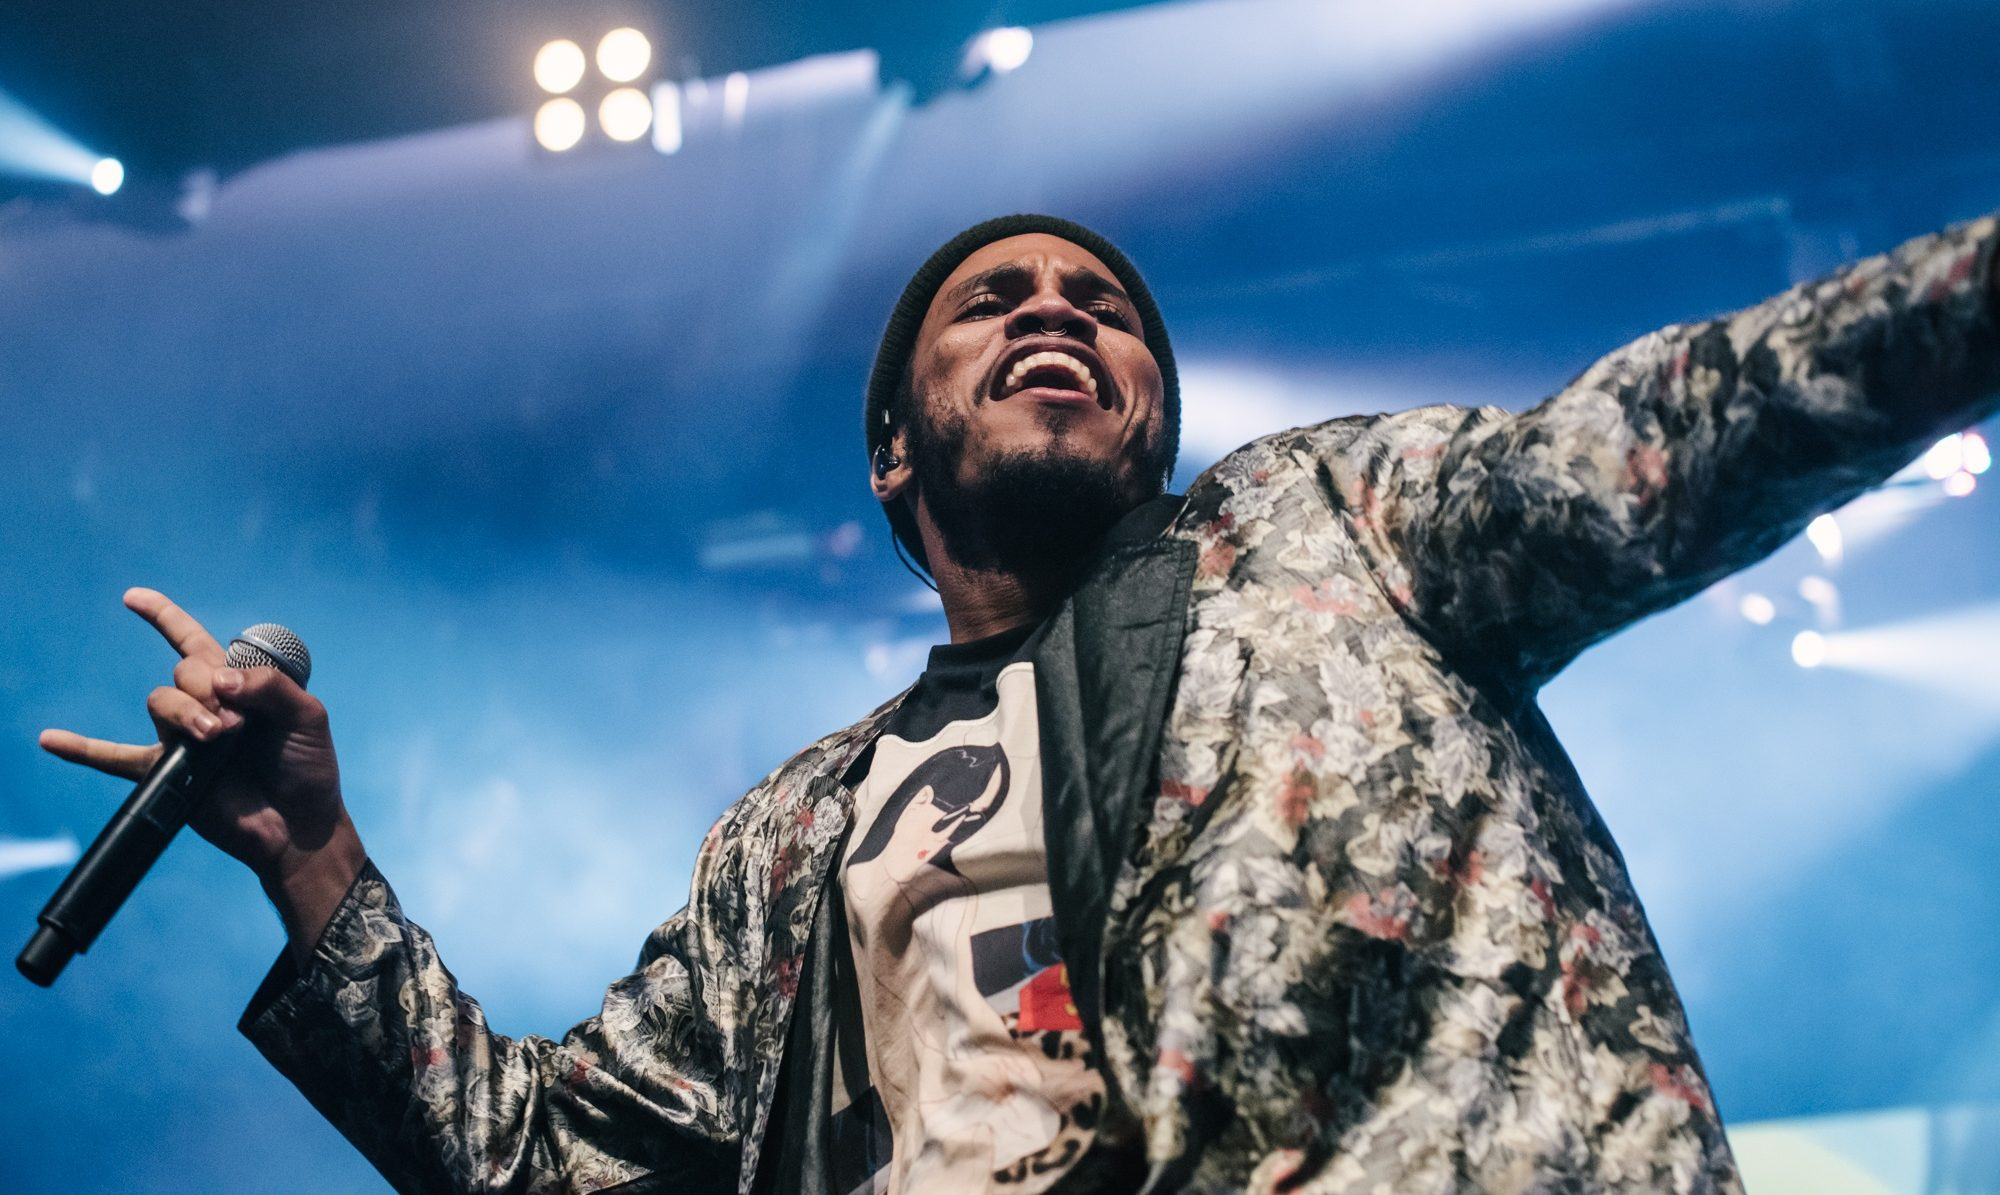 Concert Review: Anderson .Paak grooves through sold-out show at The Vogue Theatre (PHOTOS)